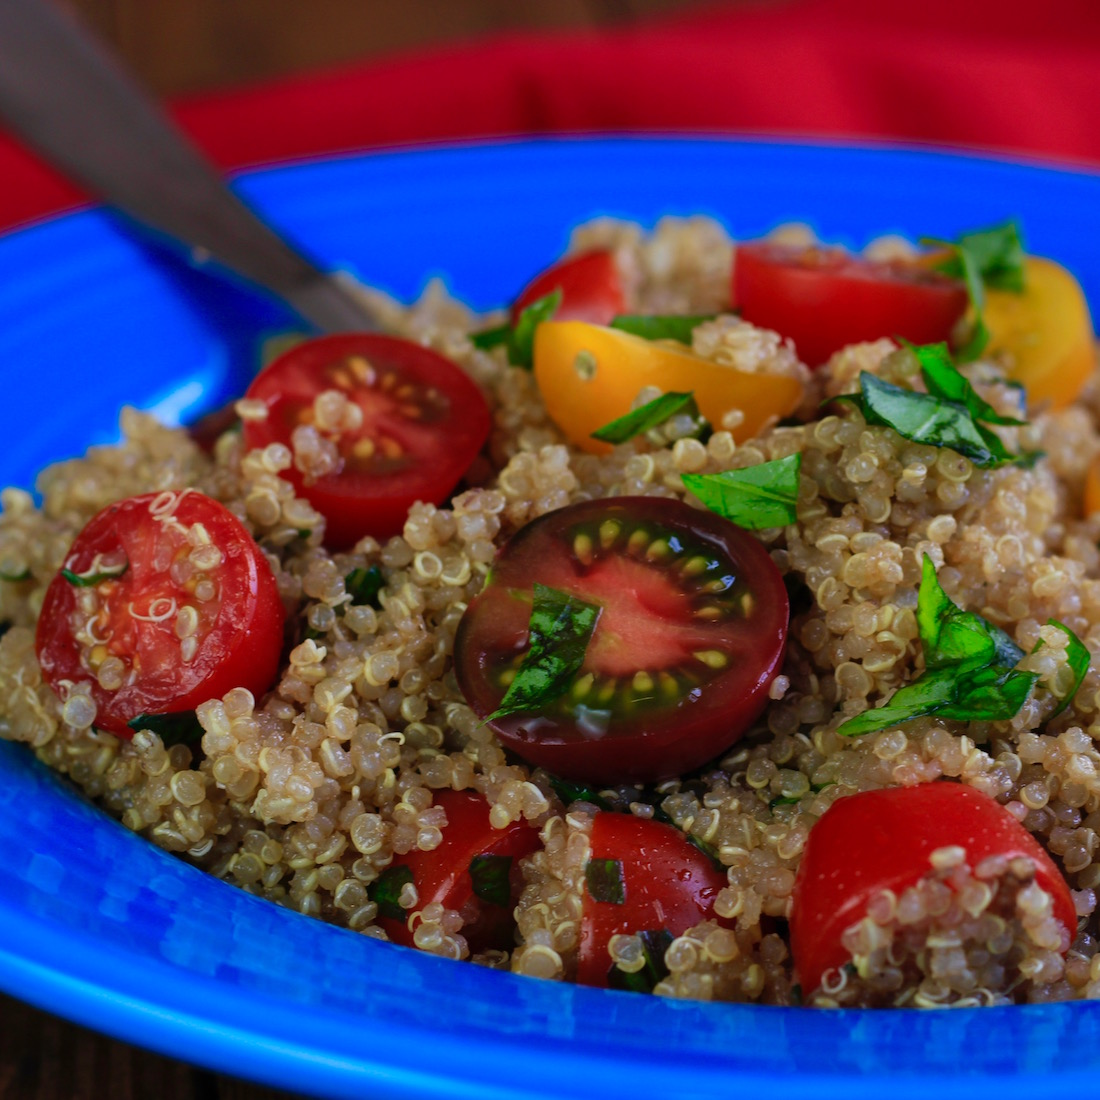 Tomato, basil and garlic quinoa salad | WHAT the HECK do I eat NOW